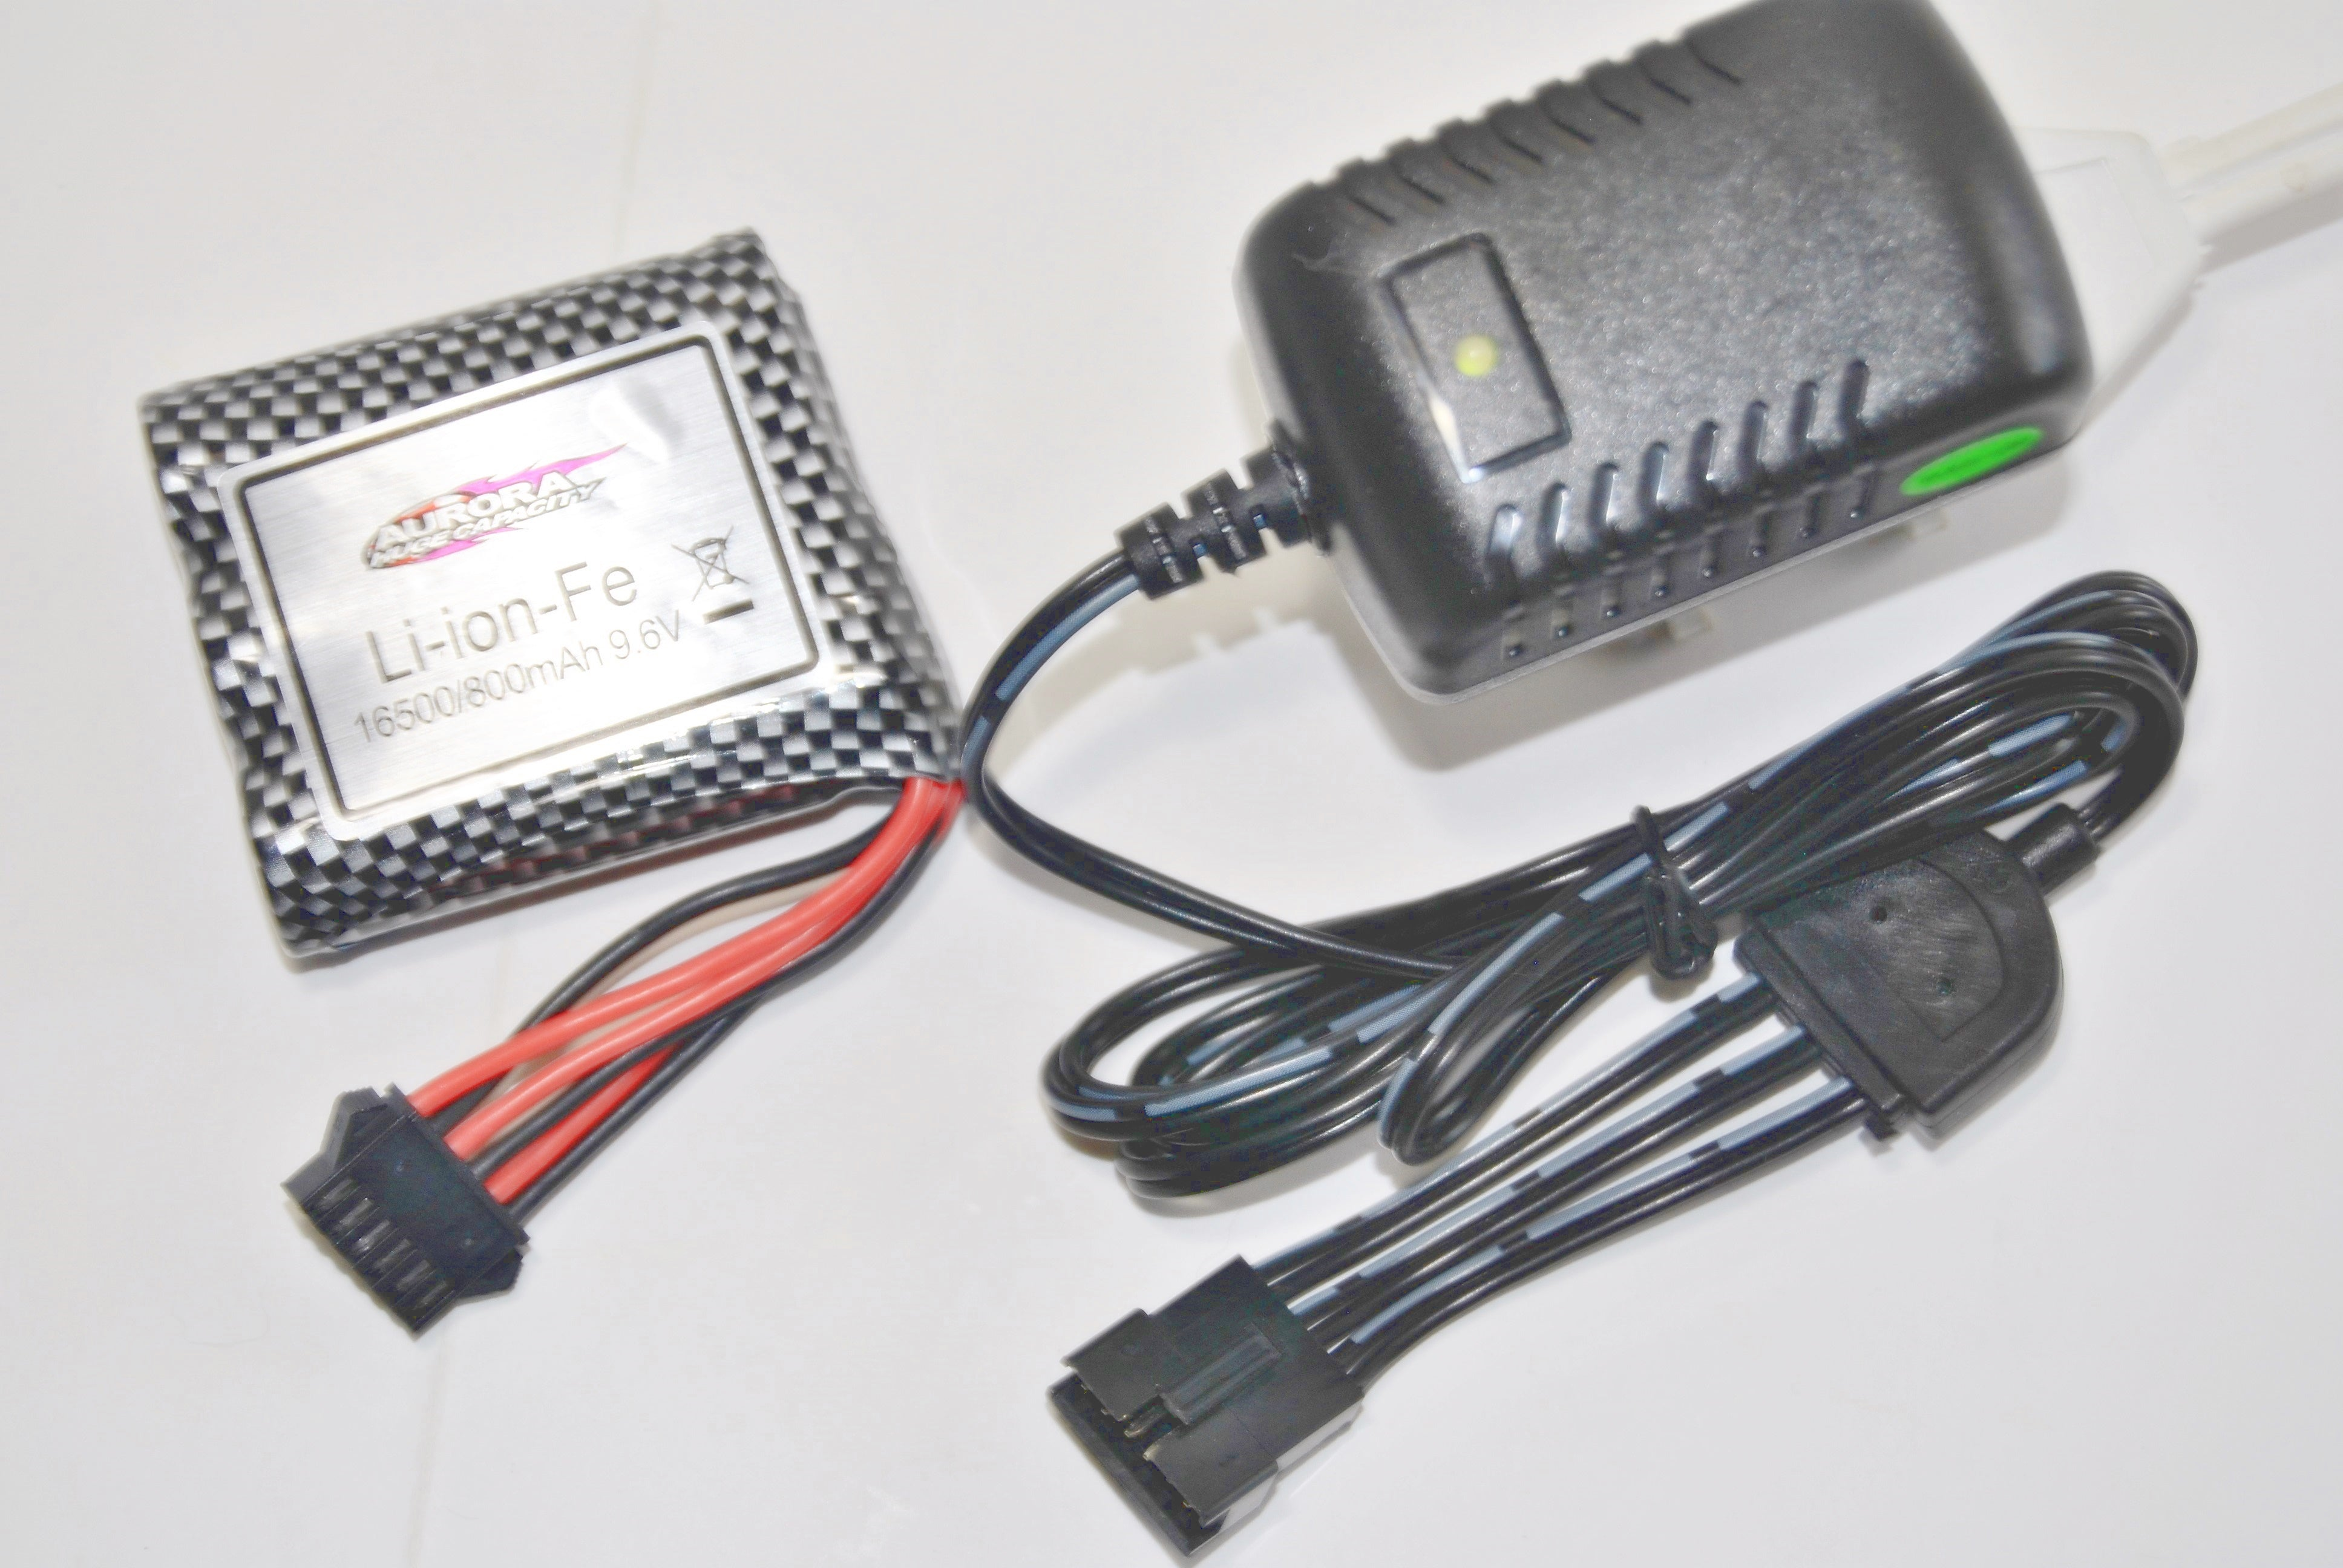 285-428066 C Chassis - Battery Blk Plug 6 Wire ( 9.6V 800mAh ...